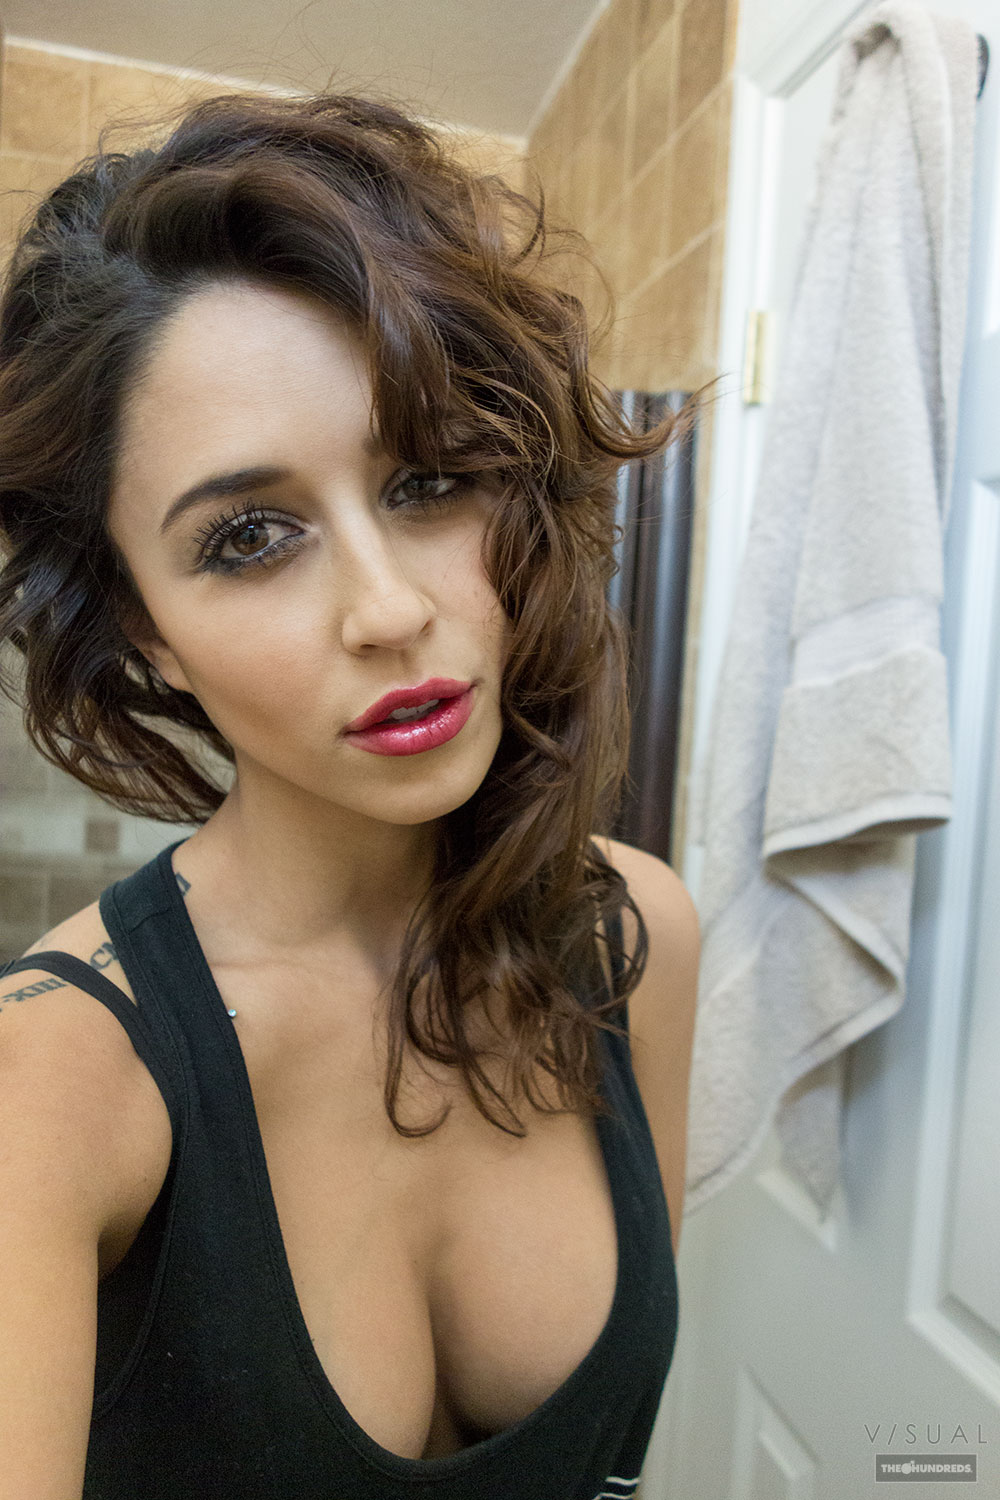 Selfie Tianna Gregory nude (84 pics), Fappening